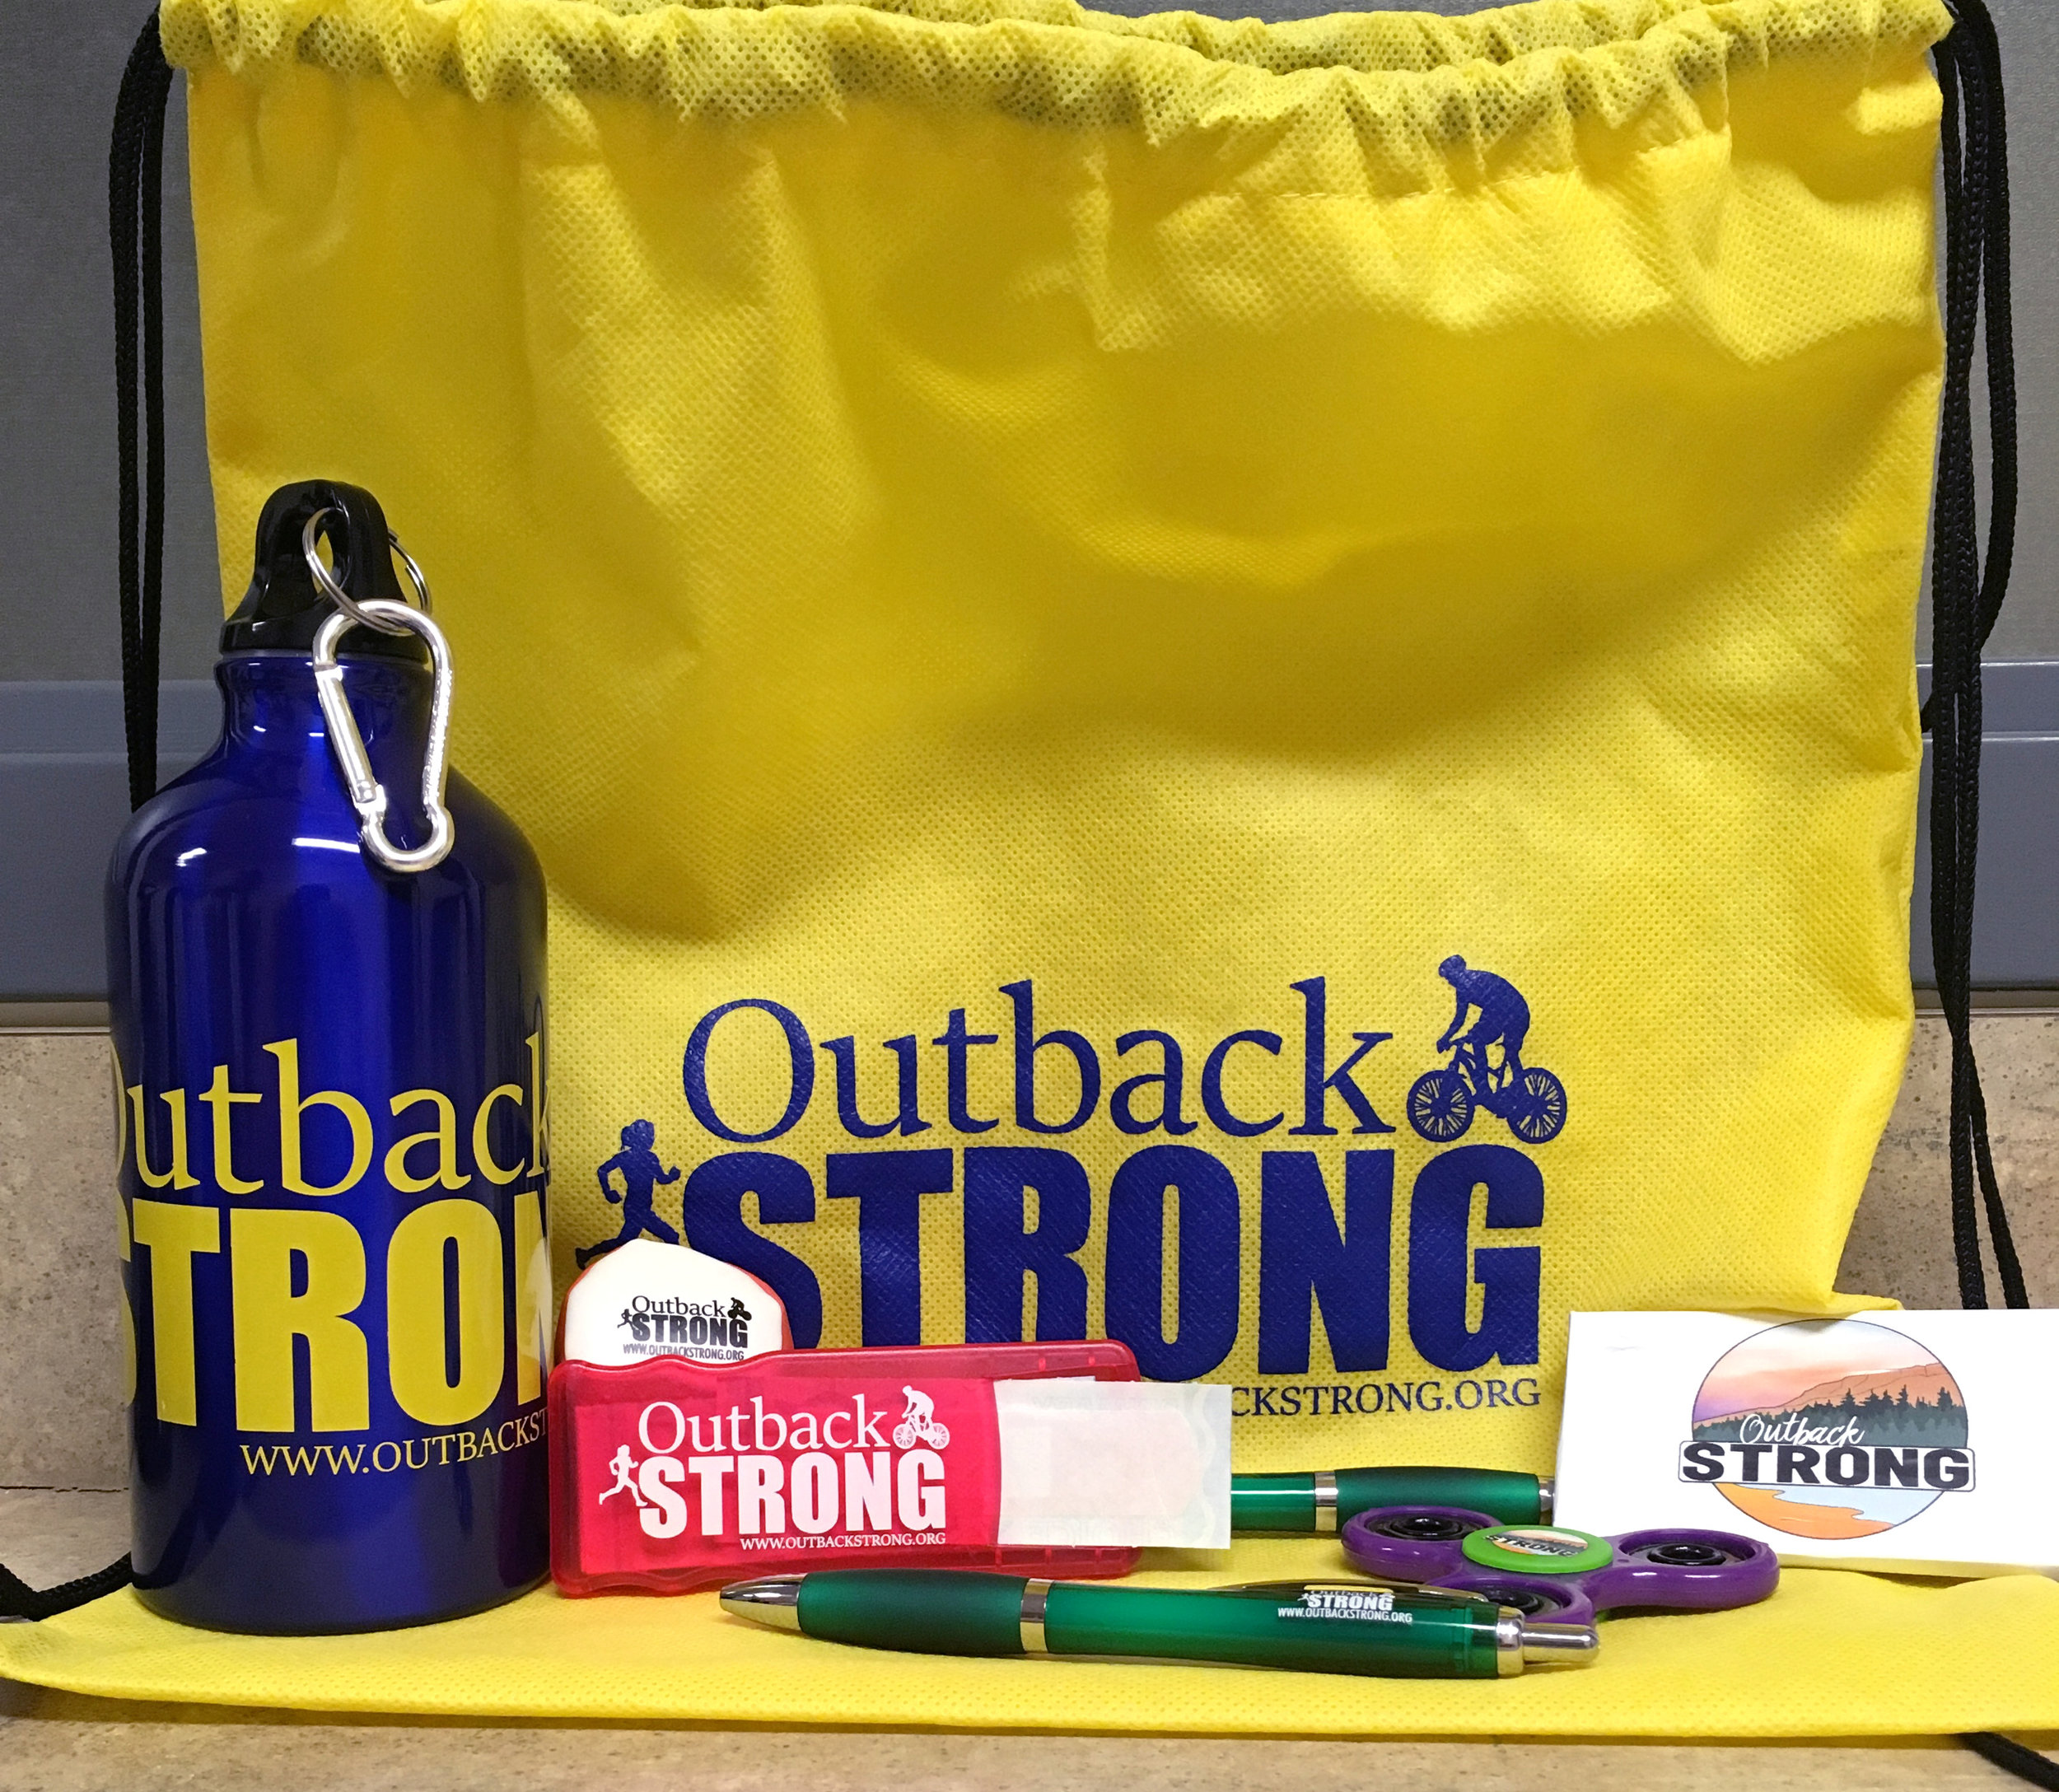 Check out the prizes and swag we'll be offering at the Outback Strong Teen Health Fair. We have aluminum water bottles for the teens who get each station on their passport checked off, plus prizes and giveaways: hackey sacks, bandage dispensers, fidget spinners, pens, and gum. There may be other prizes along the way.